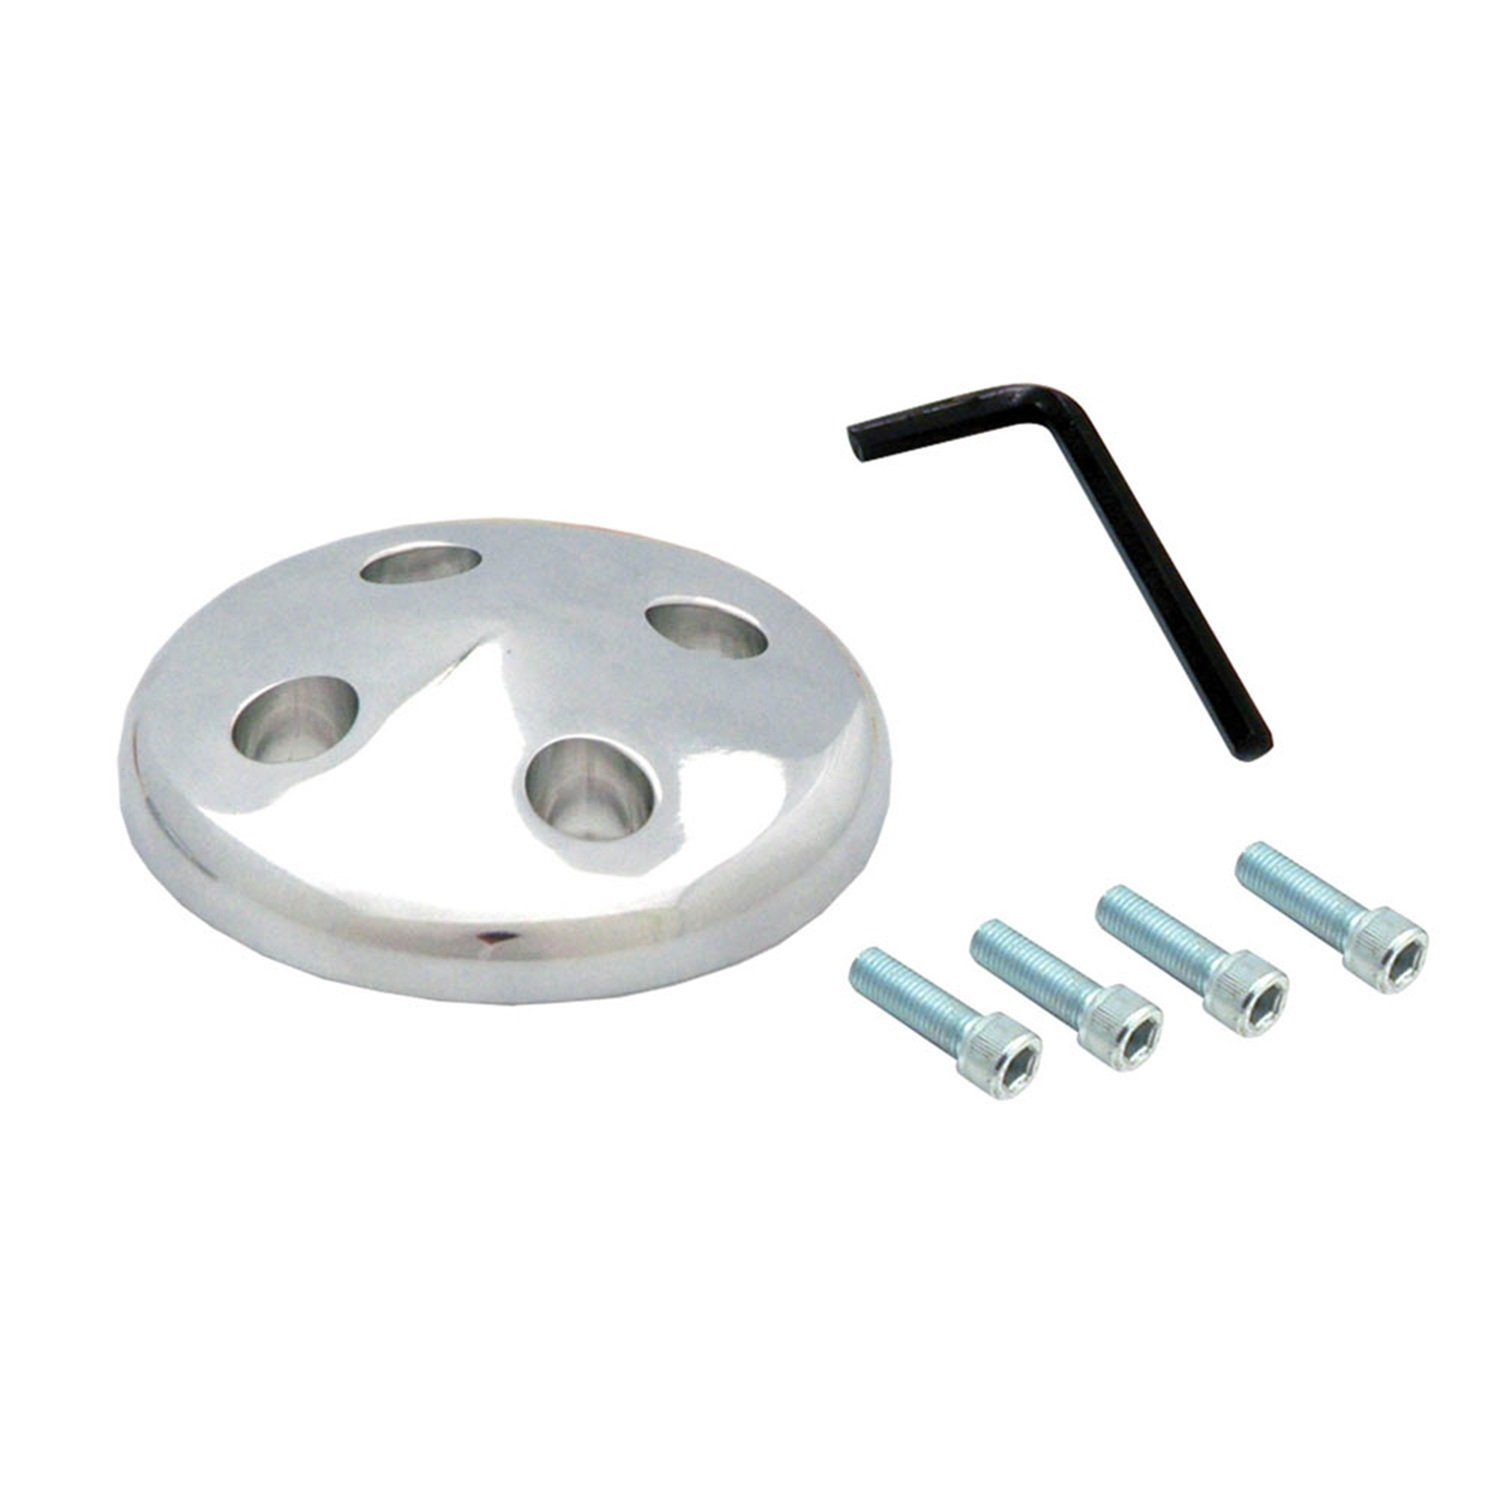 Spectre Performance 4469 Fan Pulley